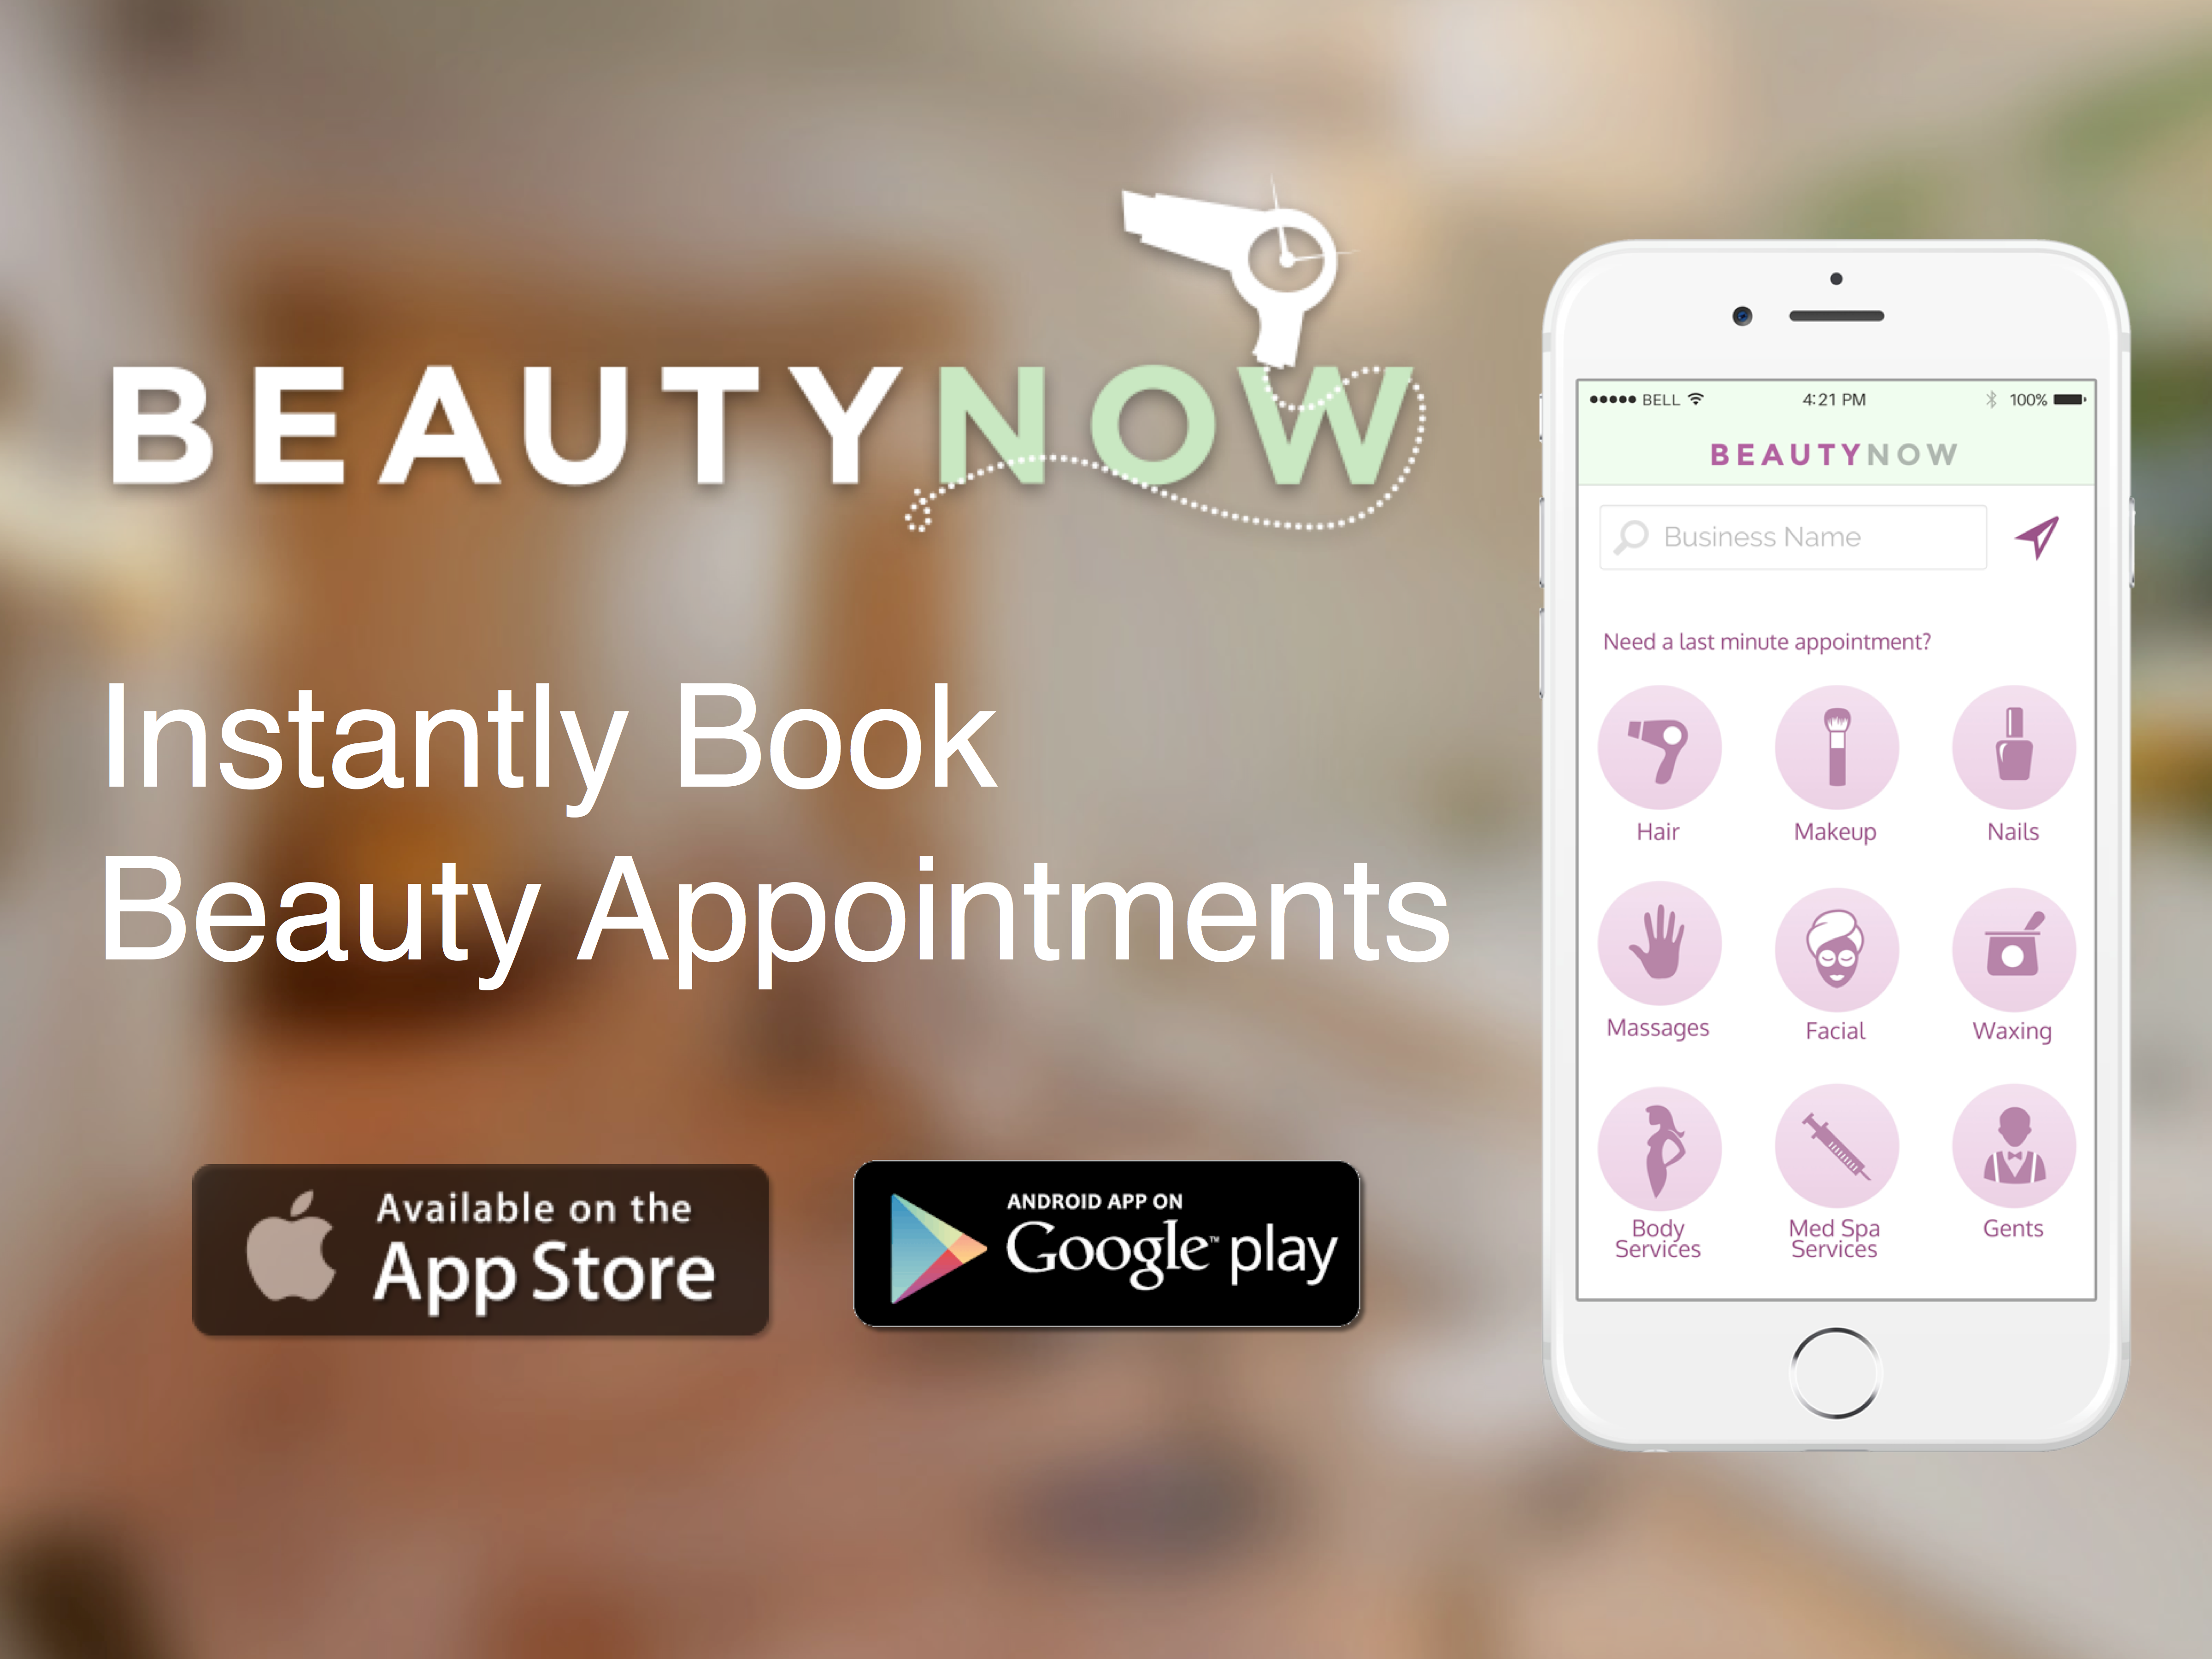 BeautyNow - Instantly Book Beauty Appointments